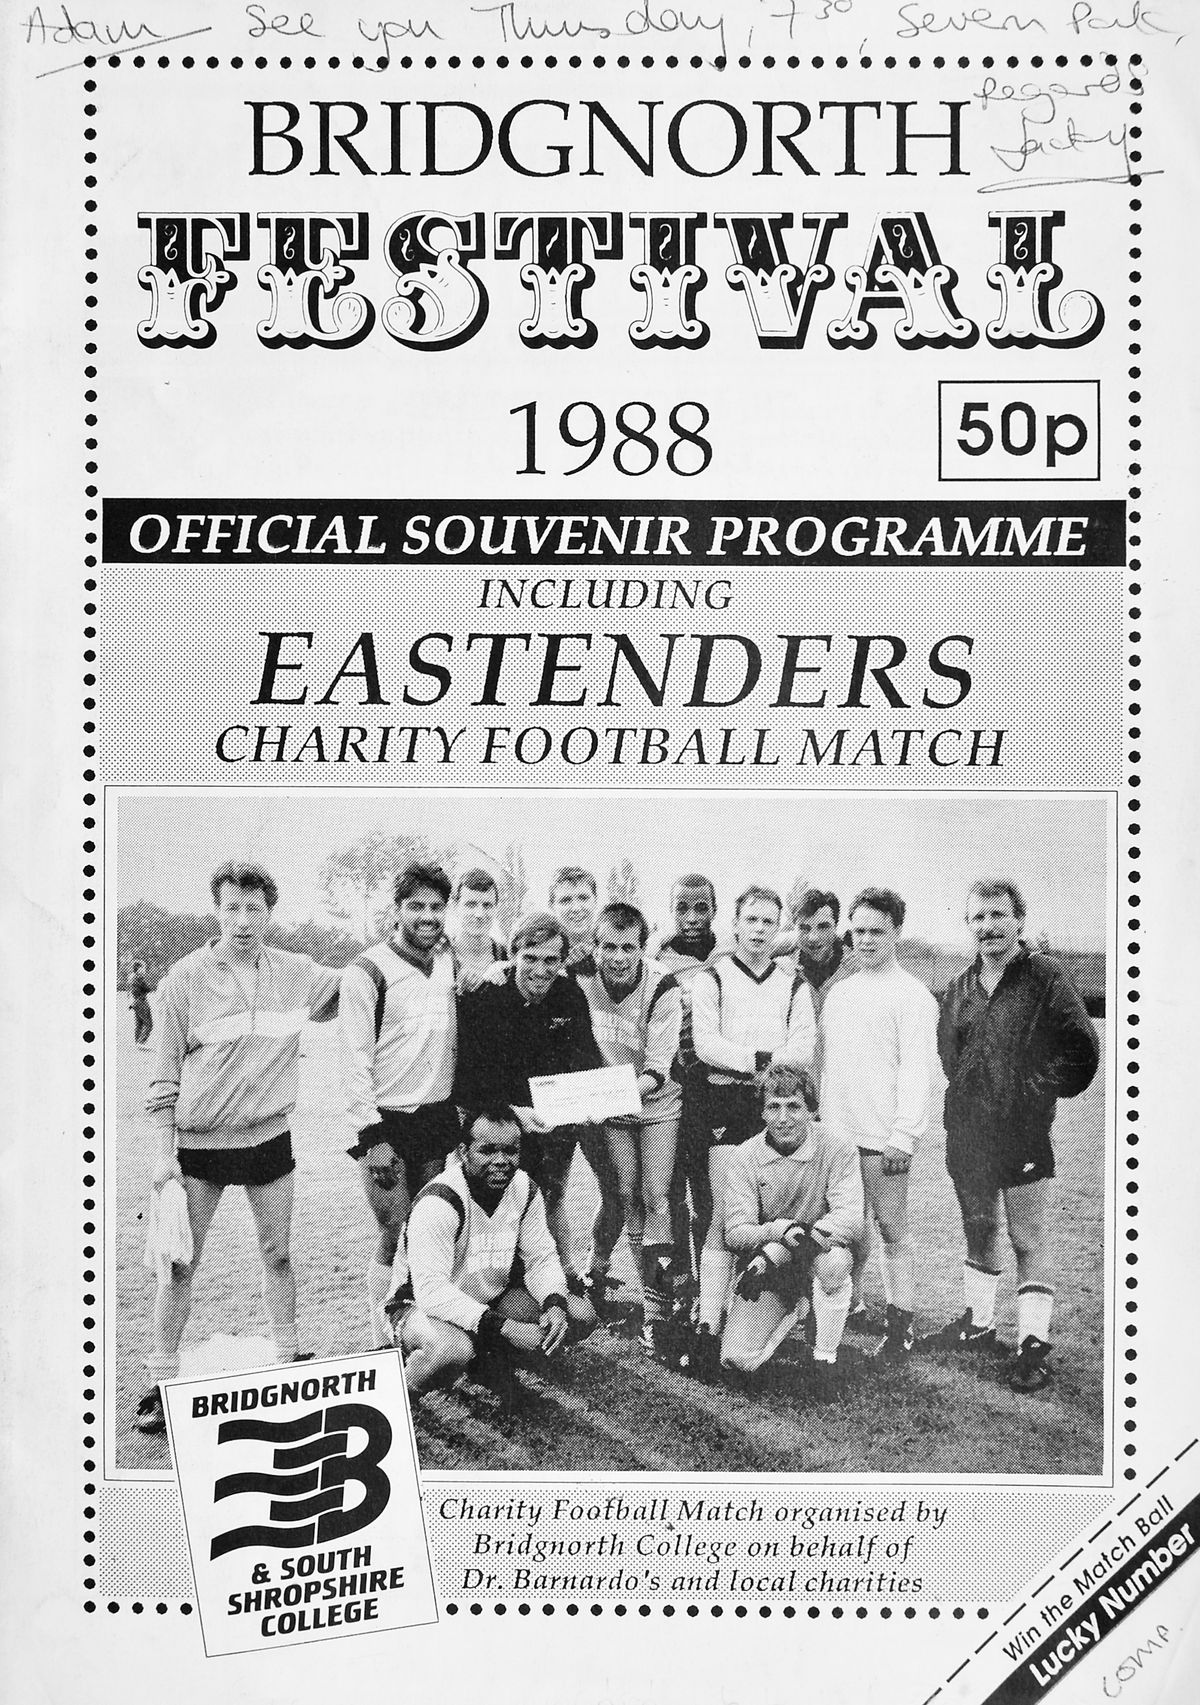 The cover of the programme.